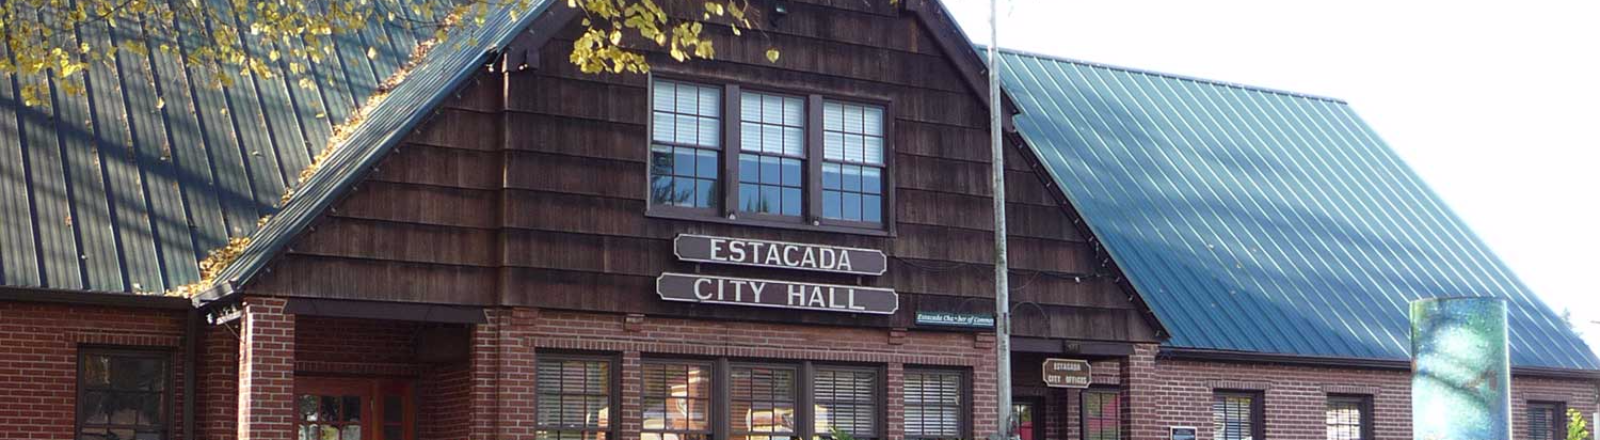 Autumn leaves cover the lawn of the Estacada City Hall, a 2-story wood shake and red brick building